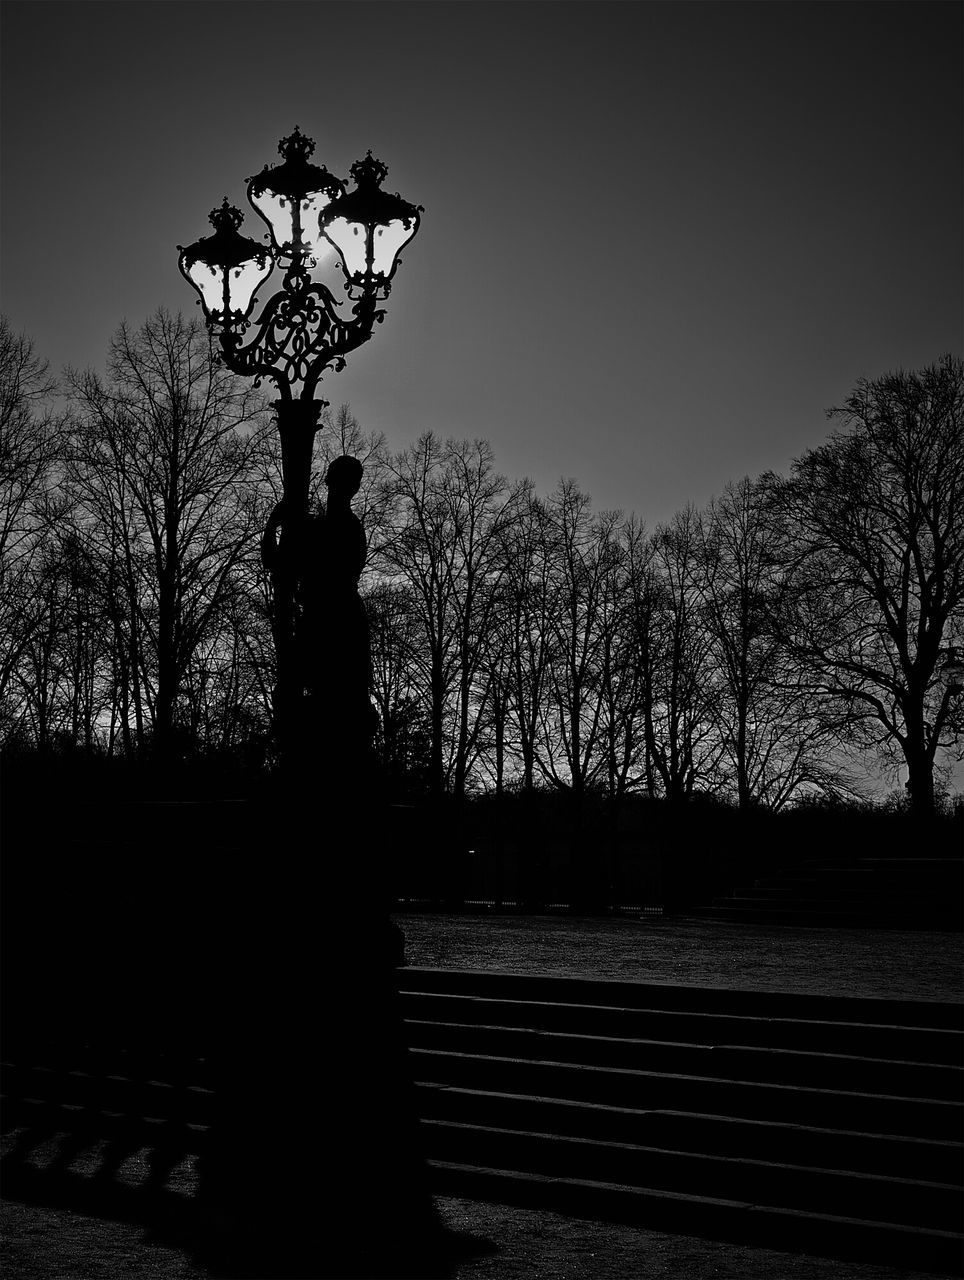 Silhouette Of Person Embracing Street Light